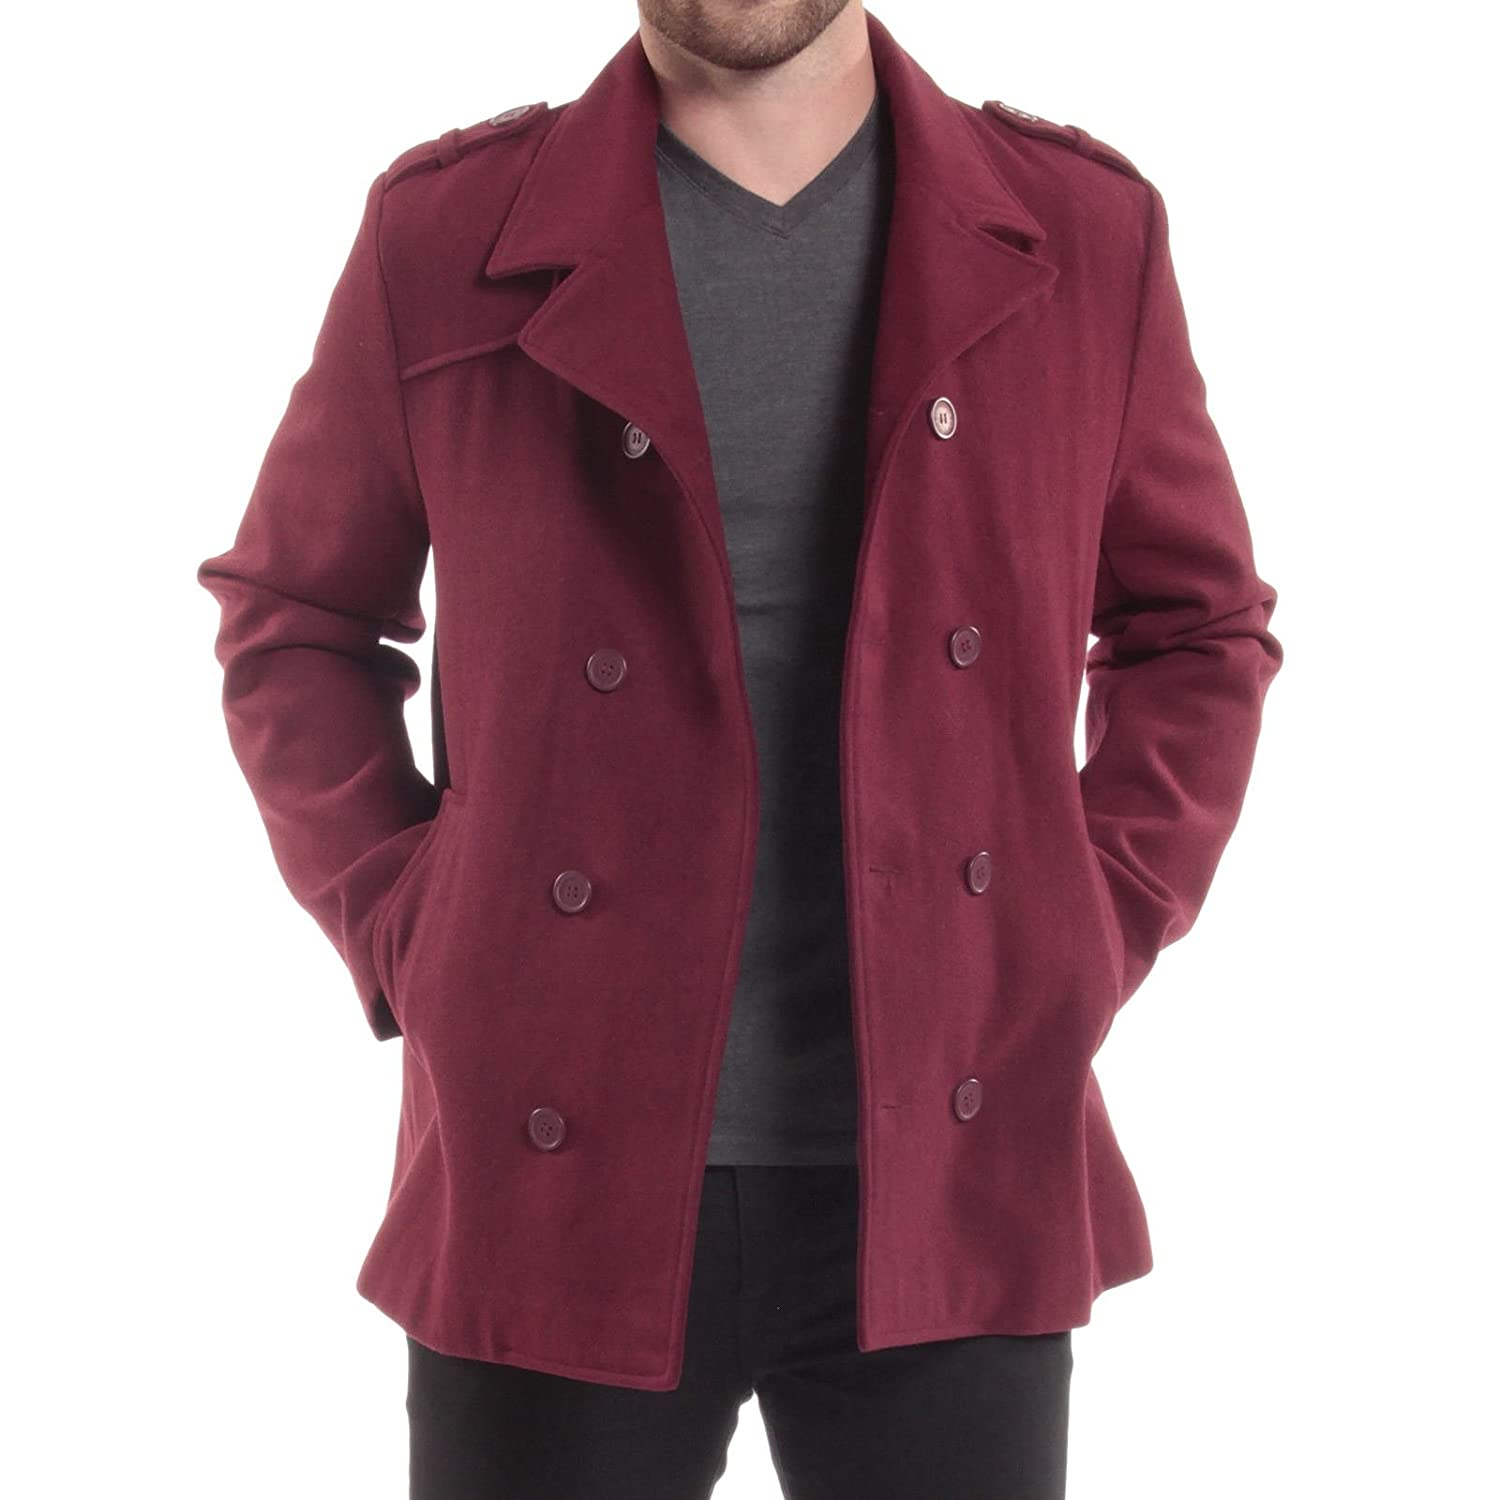 Amazon Best Sellers: Best Men's Wool Jackets & Coats